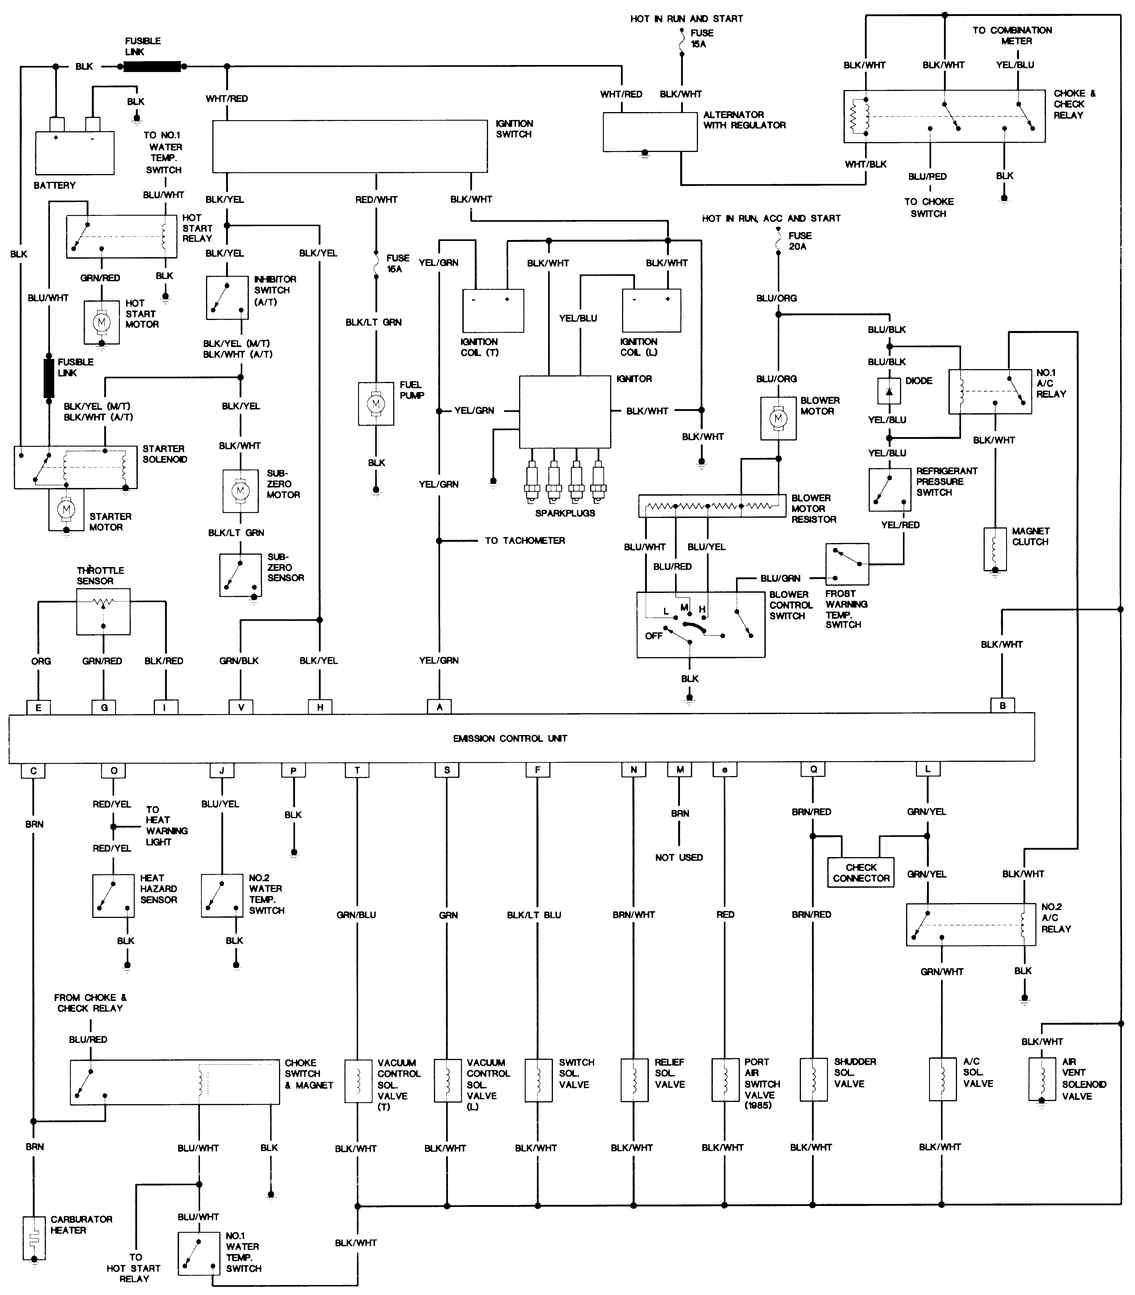 Evo 8 Fuel Pump Wiring Diagram moreover 165278 Abs Wiring Help Electrical Experts also Mazda Rx7 Fuel Injector Location besides MITSUBISHI Car Radio Wiring Connector also Honda Rebel 250 Wiring Diagram. on evo 8 ecu wiring diagram